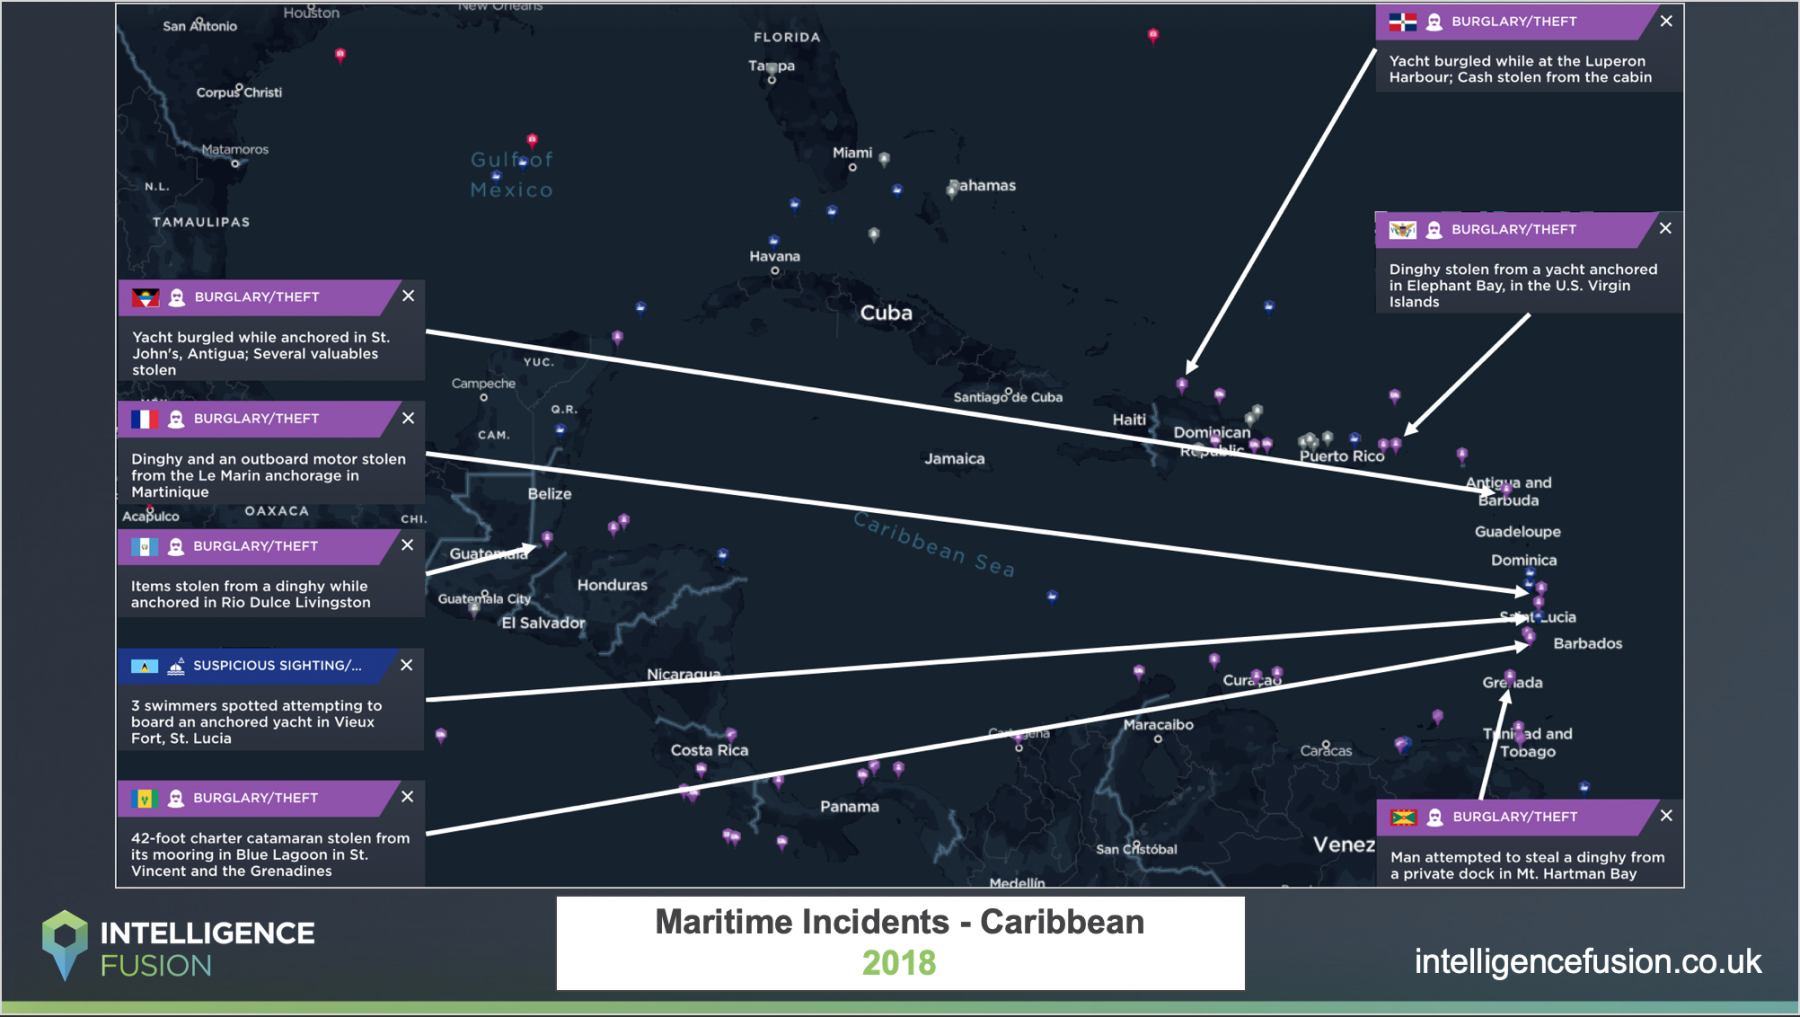 A map showing the location of significant maritime security risks in the Caribbean throughout 2019